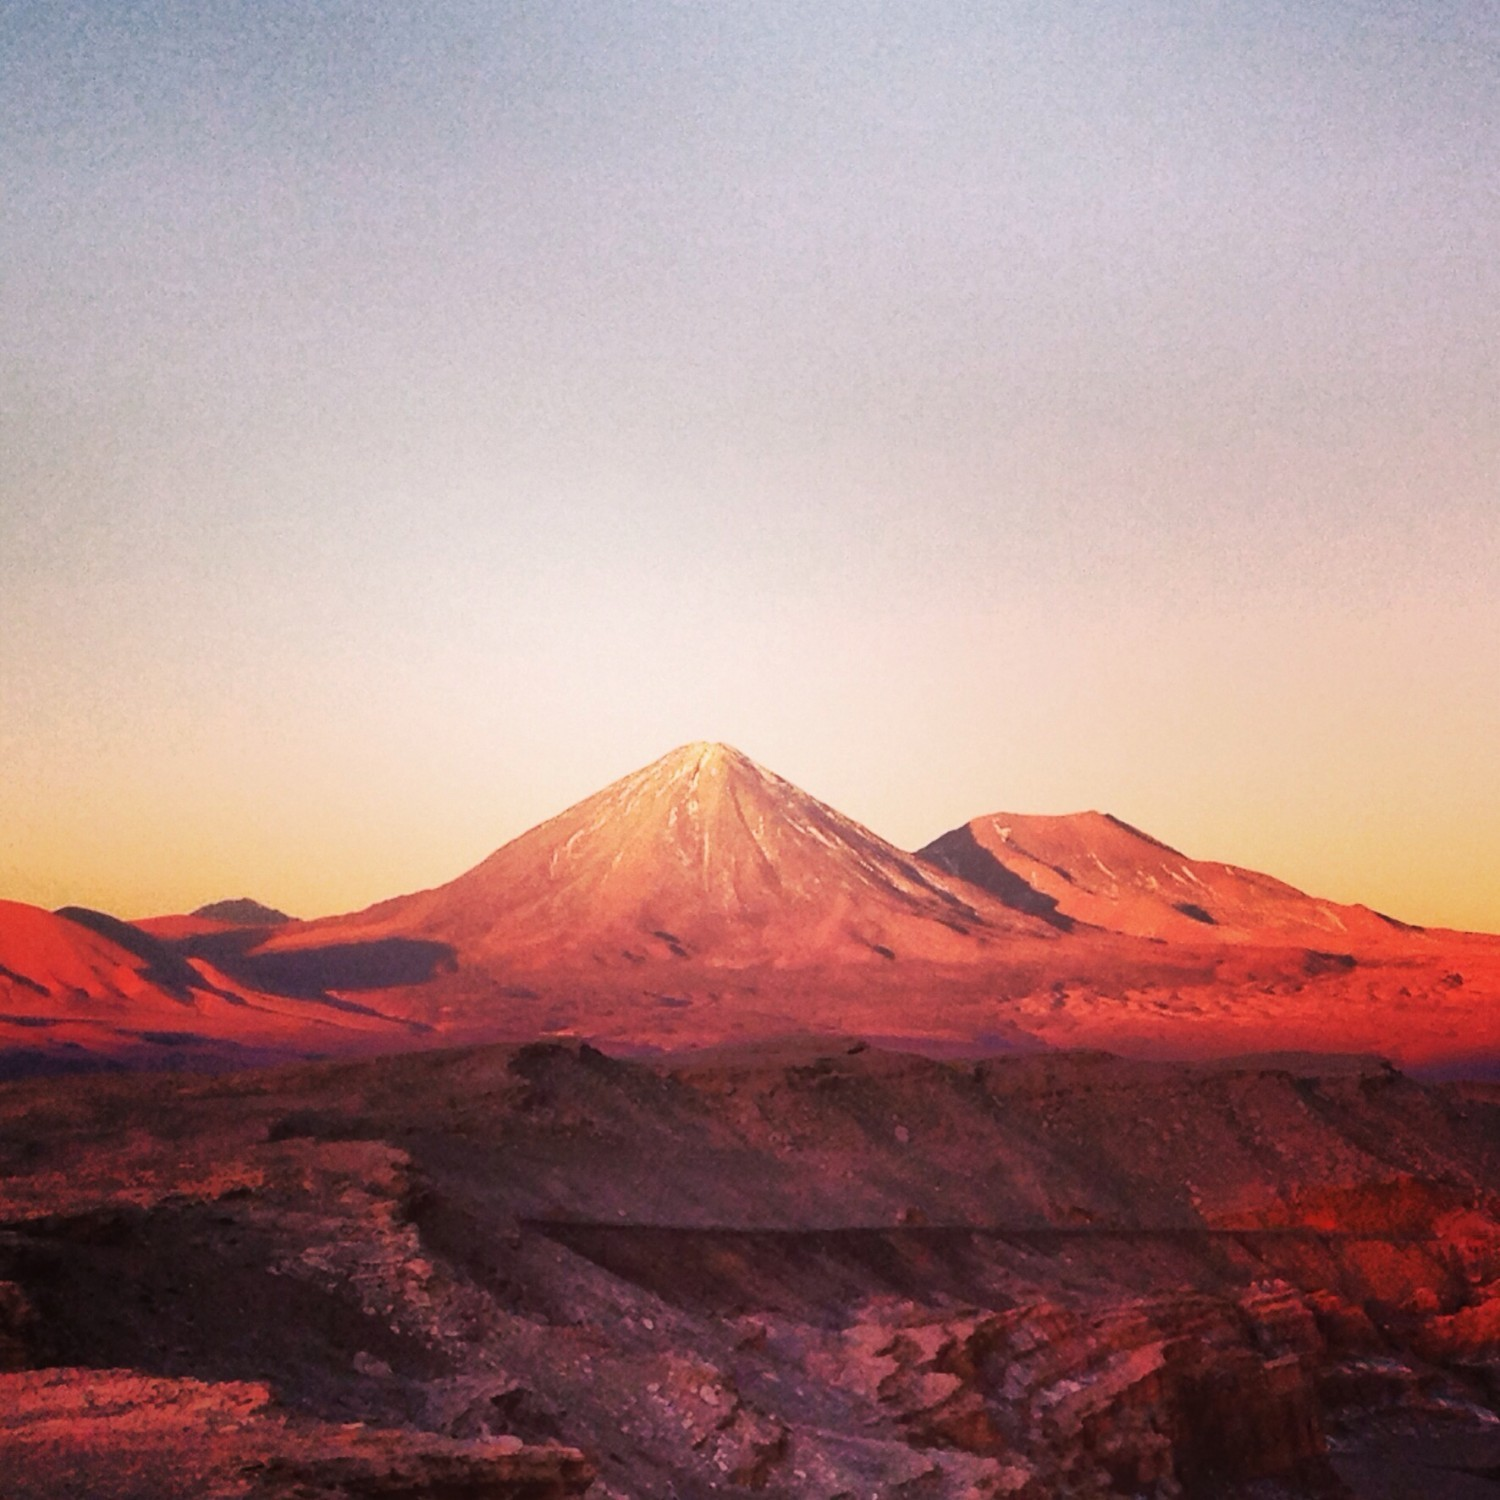 Atacama desert in Chile bespoke and luxury adventure